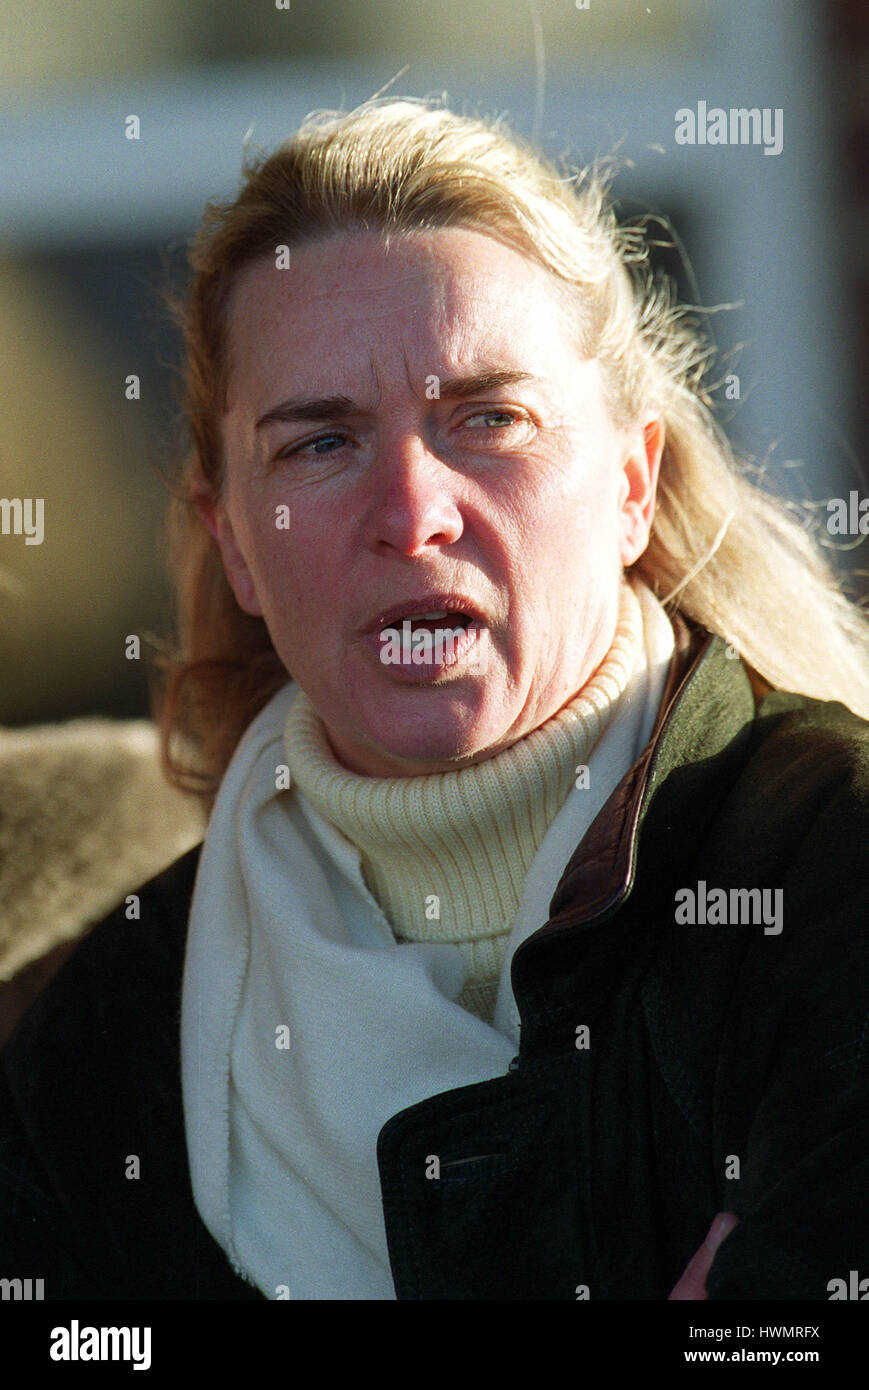 MRS S.J.SMITH RACE HORSE TRAINER 06 January 2000 - Stock Image